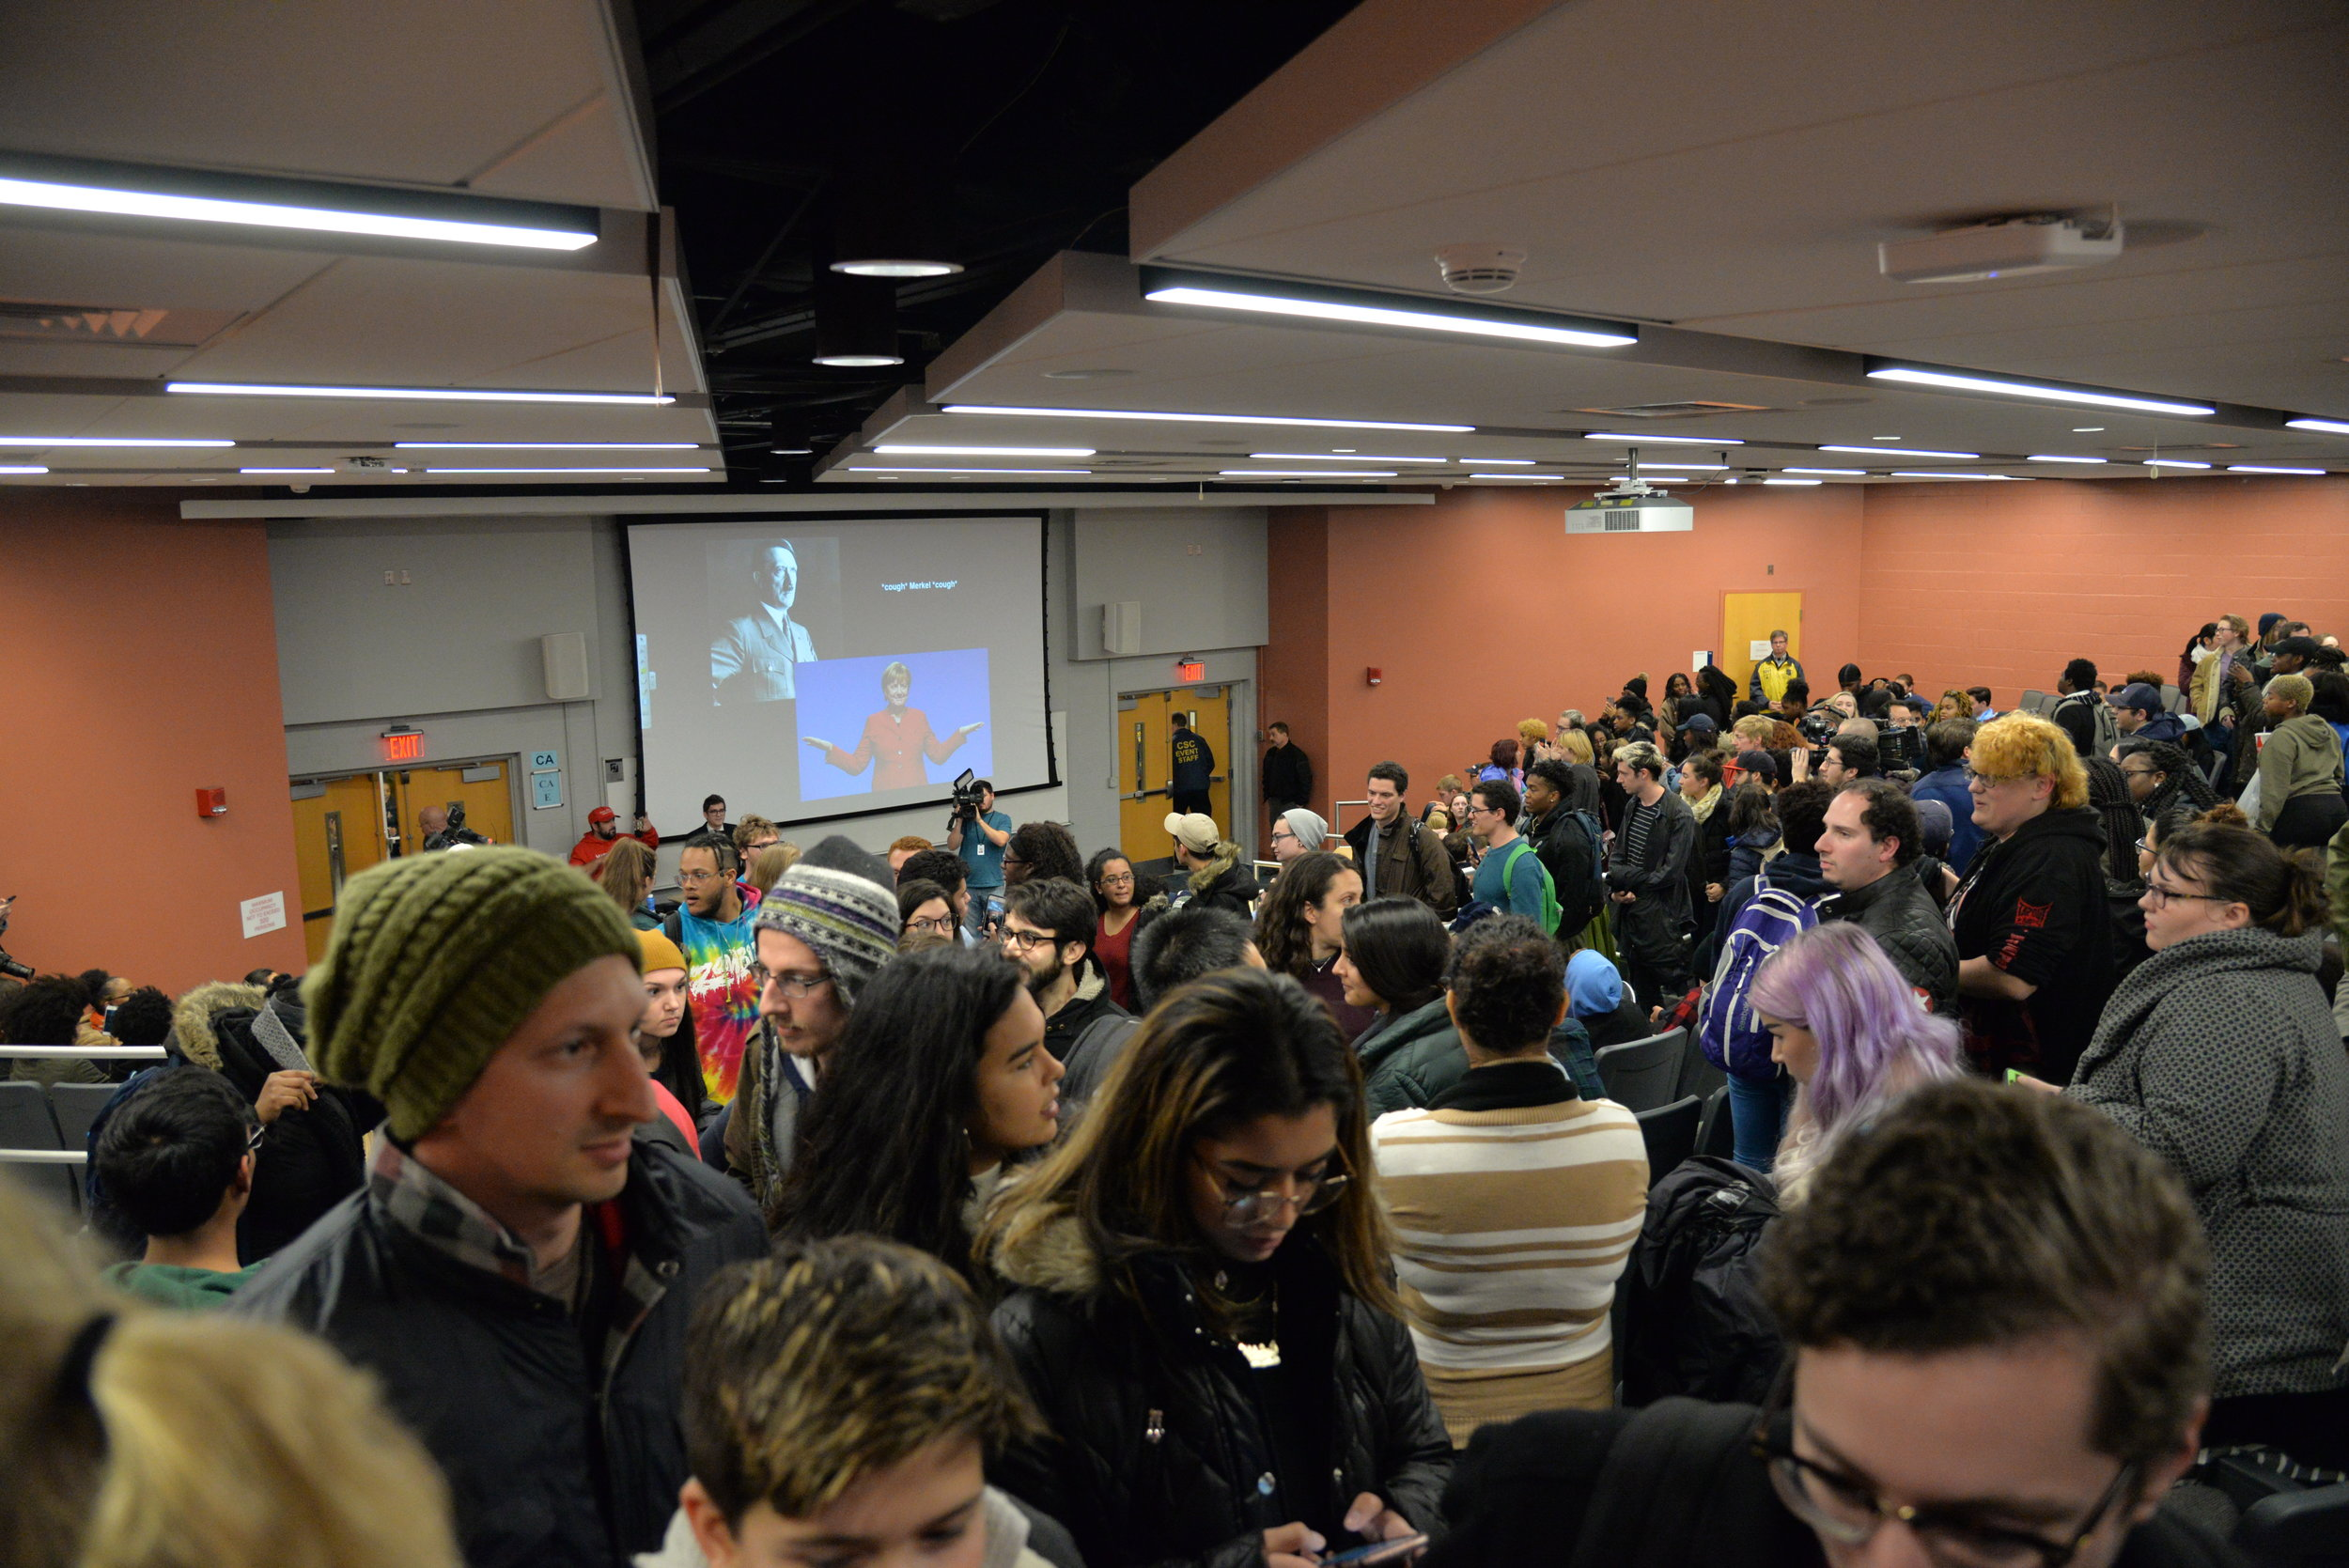 Protestors began to get up and walk out during the middle of the lecture. (Amar Batra/The Daily Campus)